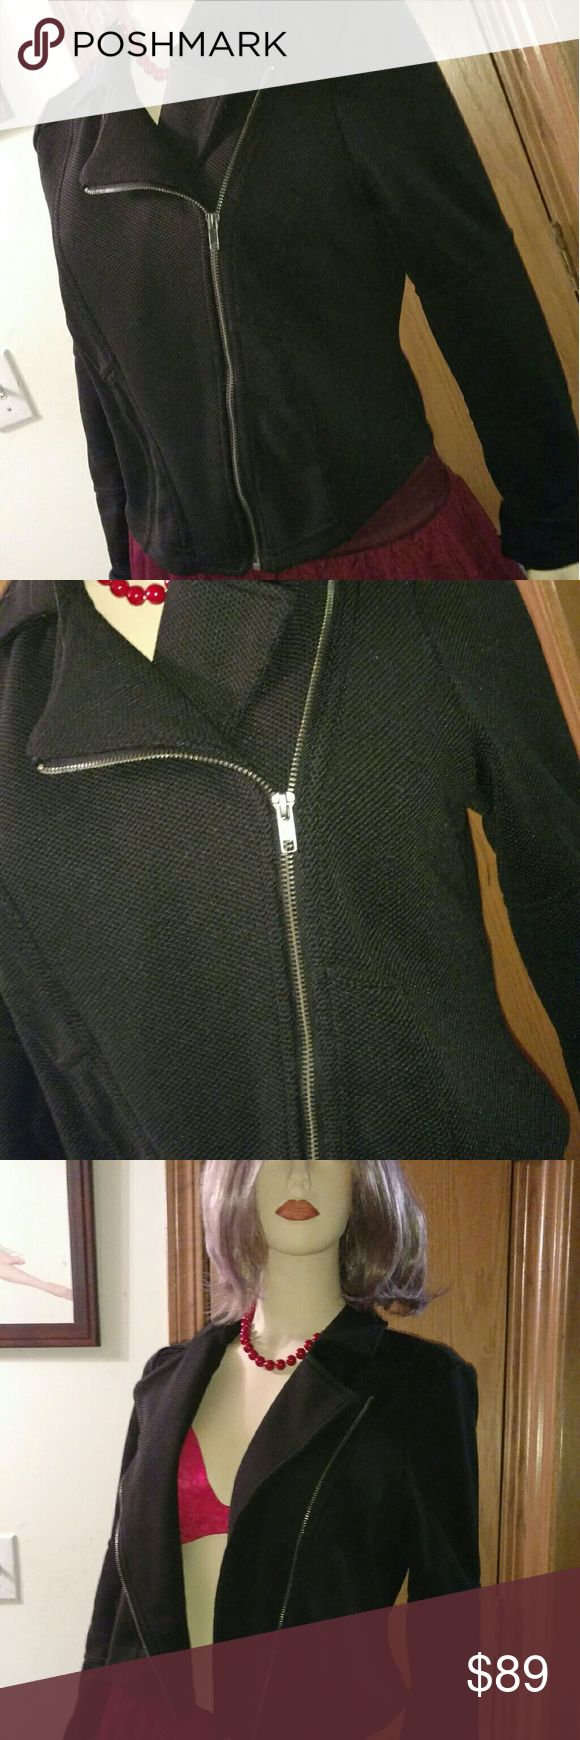 **NWT** Torrid Smart Jacket Smart and Sleek Zipper Jacket by Torrid  Perfect Addition to Any Outfit  Does Your Boss Keep the Office to Cold?  Need a Way to Look Fabulous, but Need to Stay Warm  This is the Jacket!  I got her a size too small and never had time to return  I had so many plans for this jacket  My loss, your gain  Reasonable Offers Encouraged  **Betsey Johnson Necklace Listed Separately** torrid Jackets & Coats Blazers